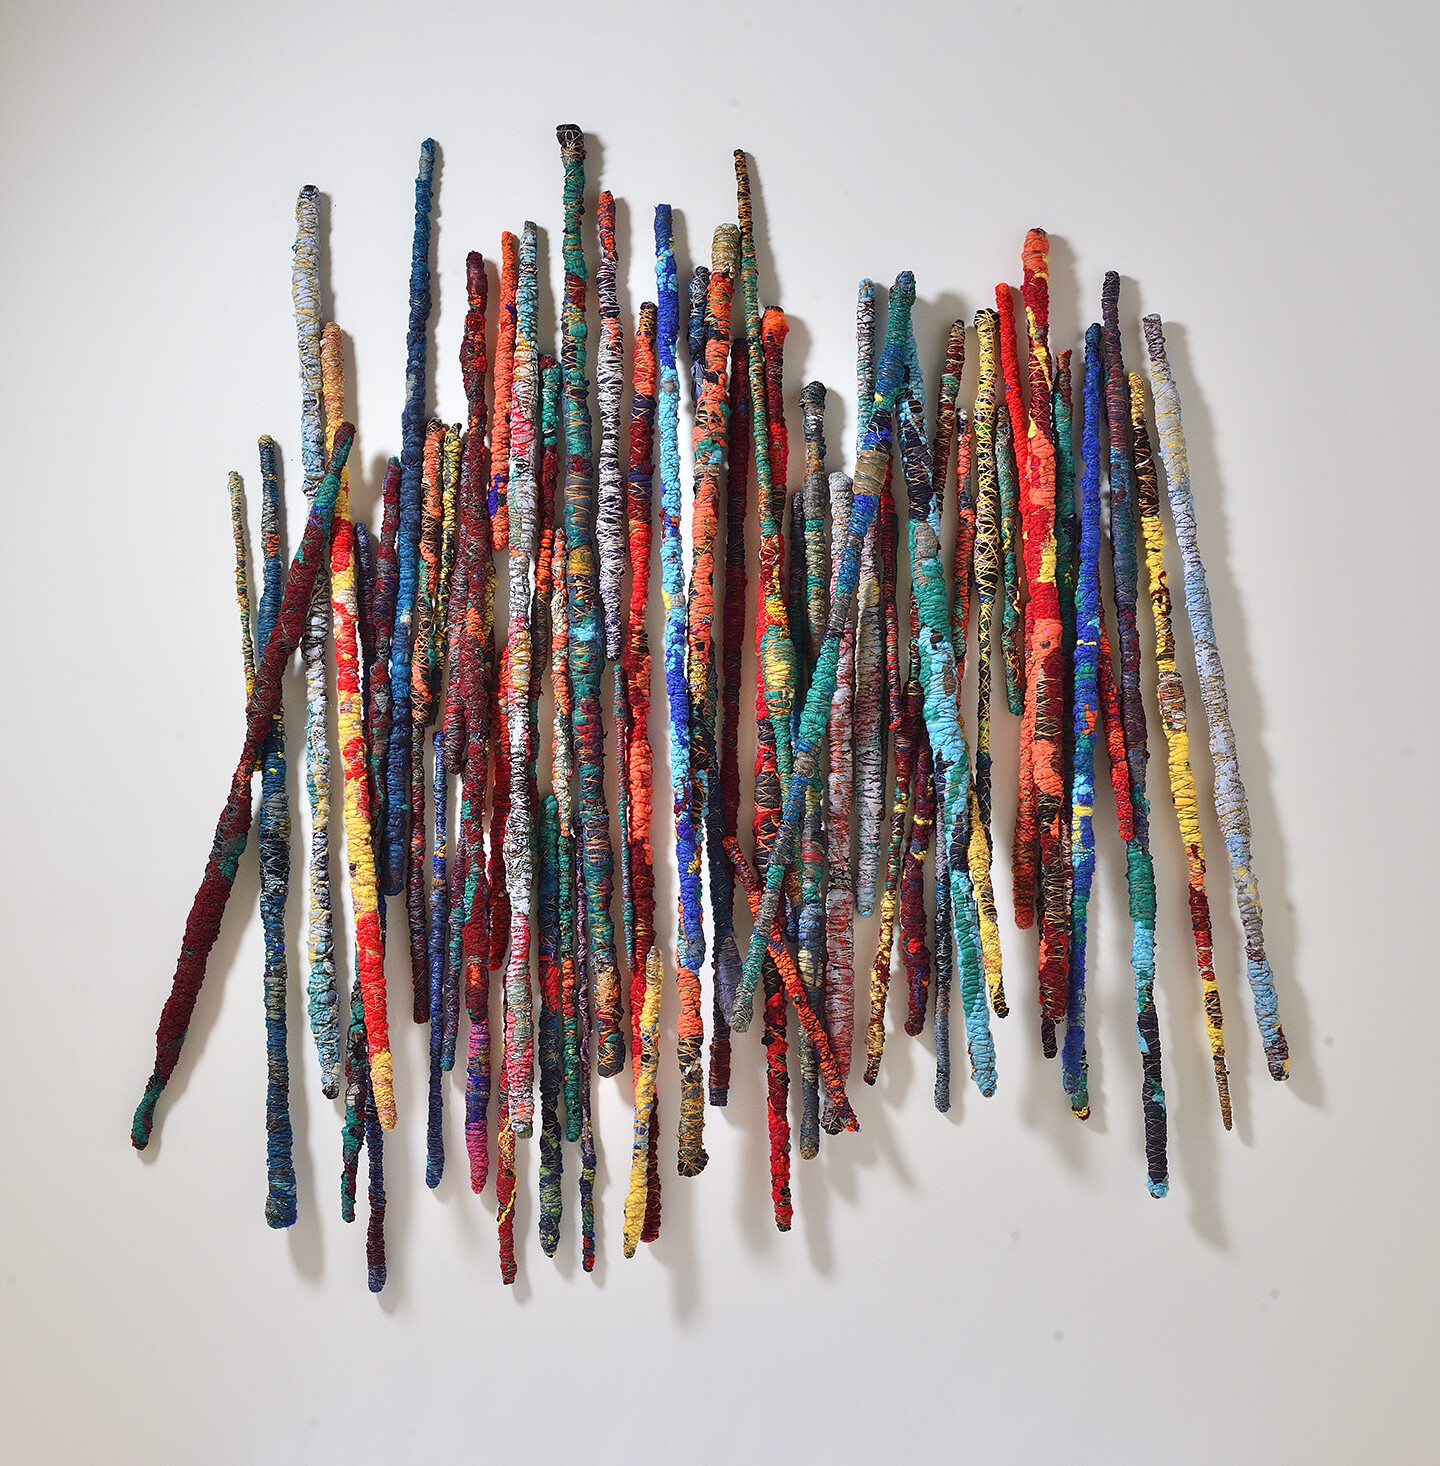 Sheila Hicks: Free threads. Textile and its Pre-Columbian Roots ...